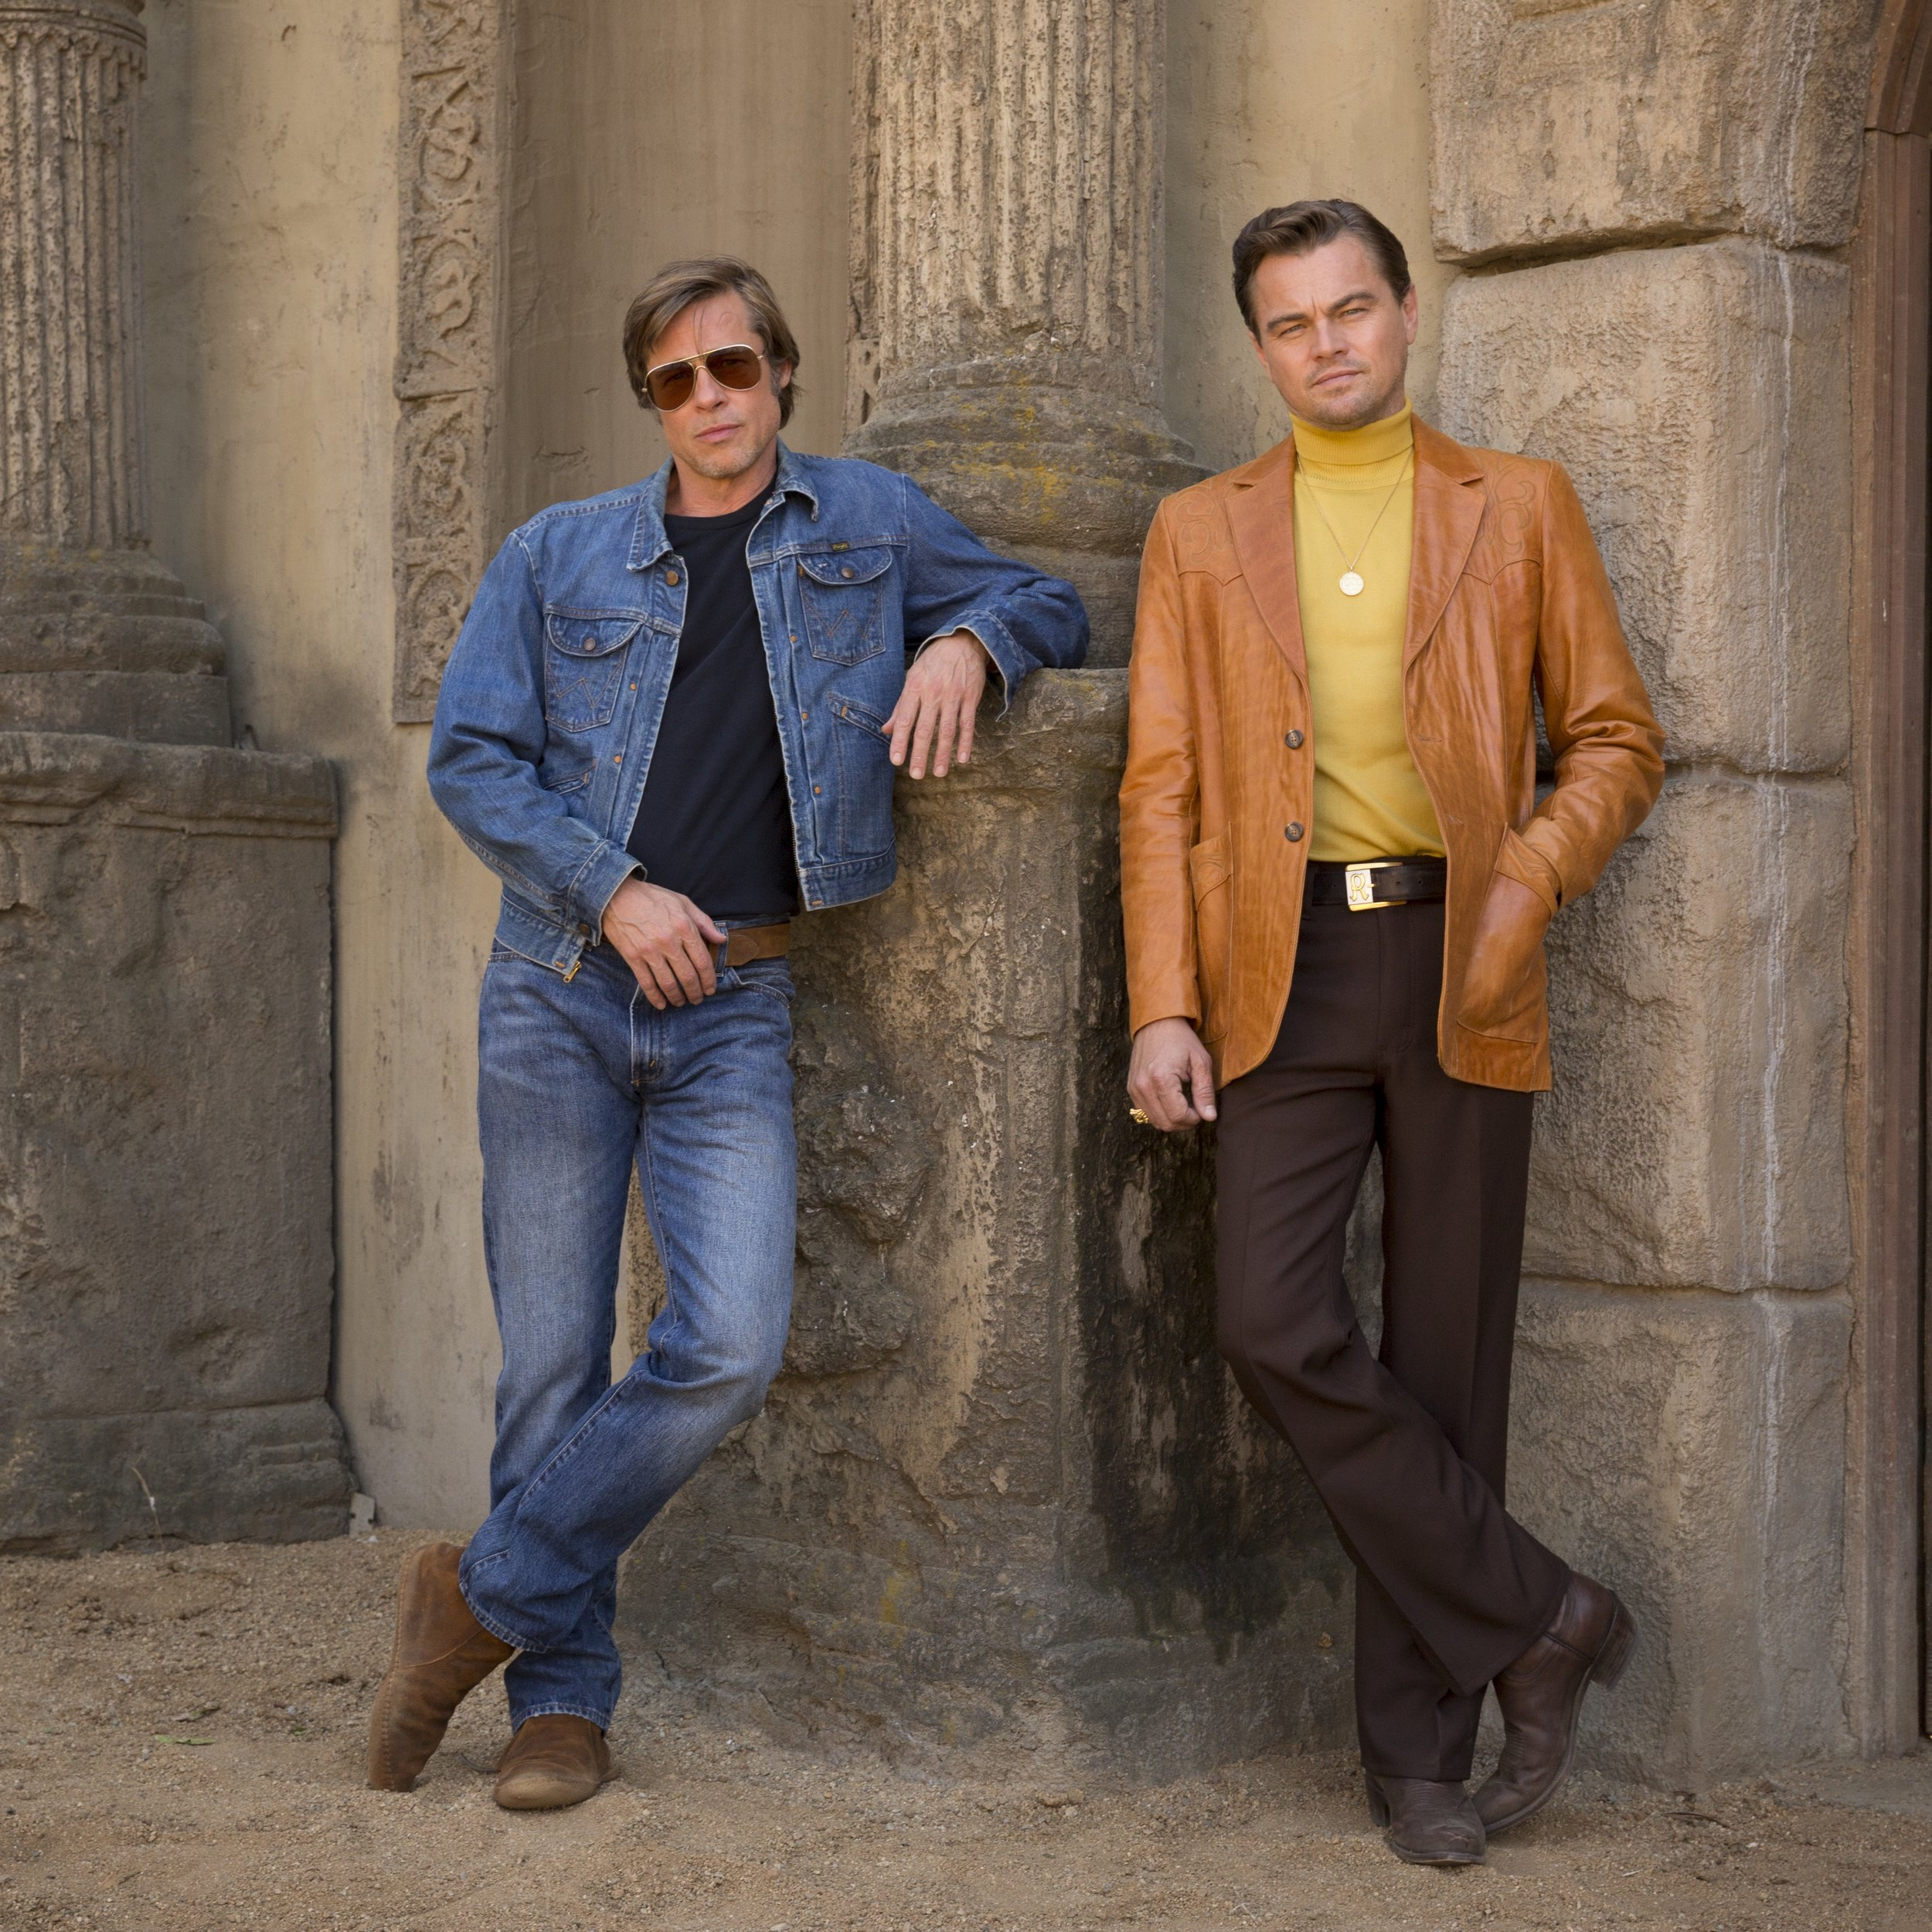 Brad Pitt is the stunt double for an over-the-hill TV Western star (Leonardo DiCaprio)